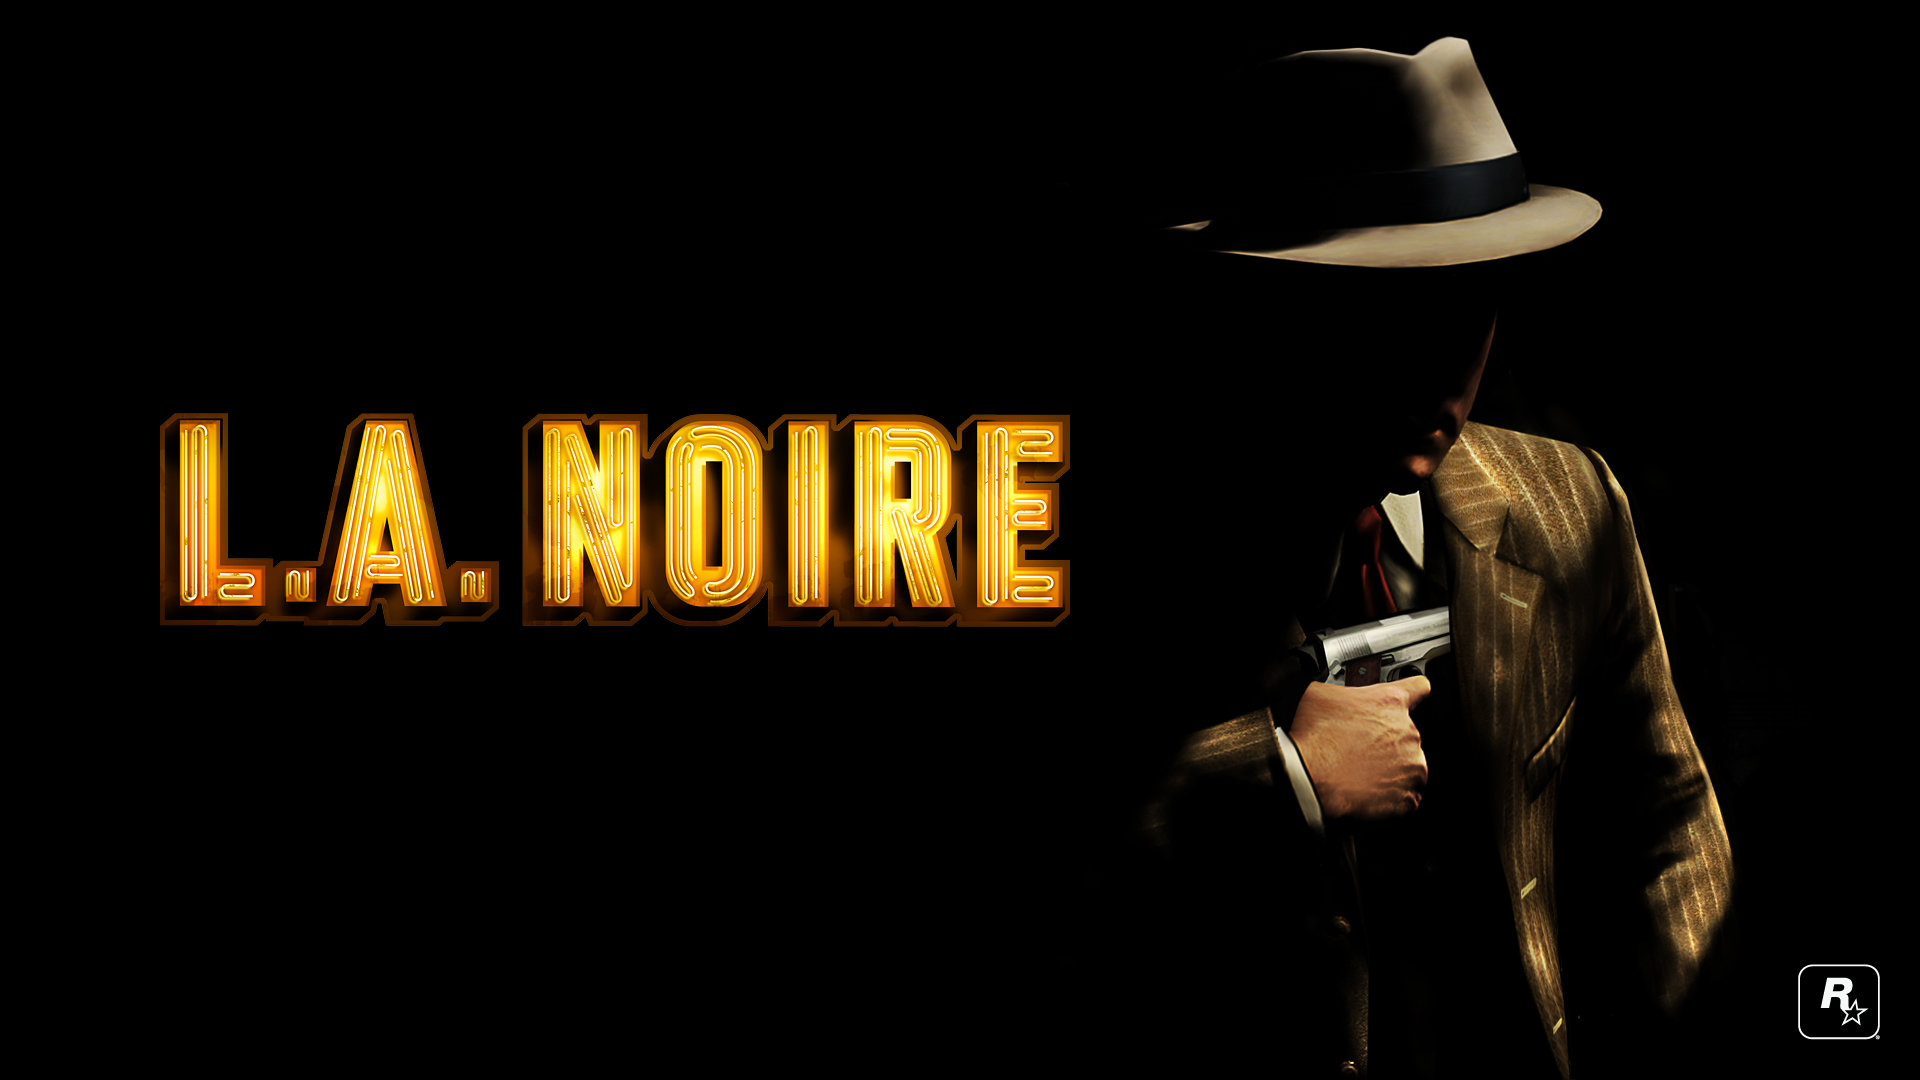 La Noire Wallpapers Hd For Desktop Backgrounds